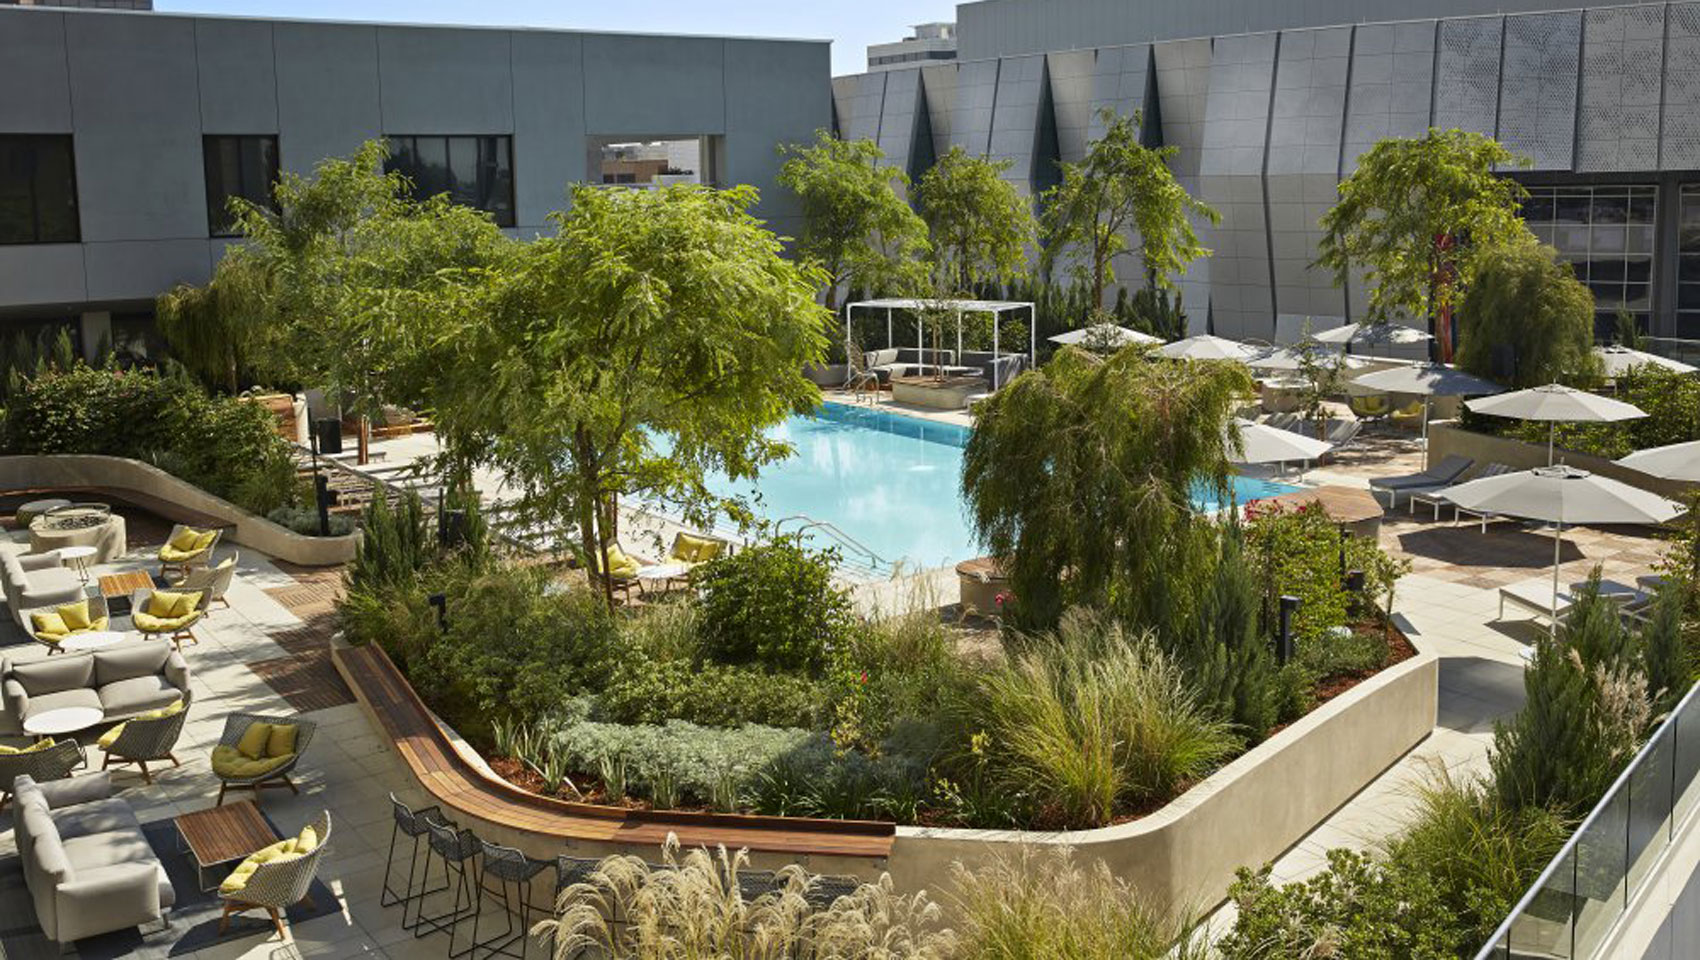 Pool terrace and lounge at Kimpton Sawyer Hotel